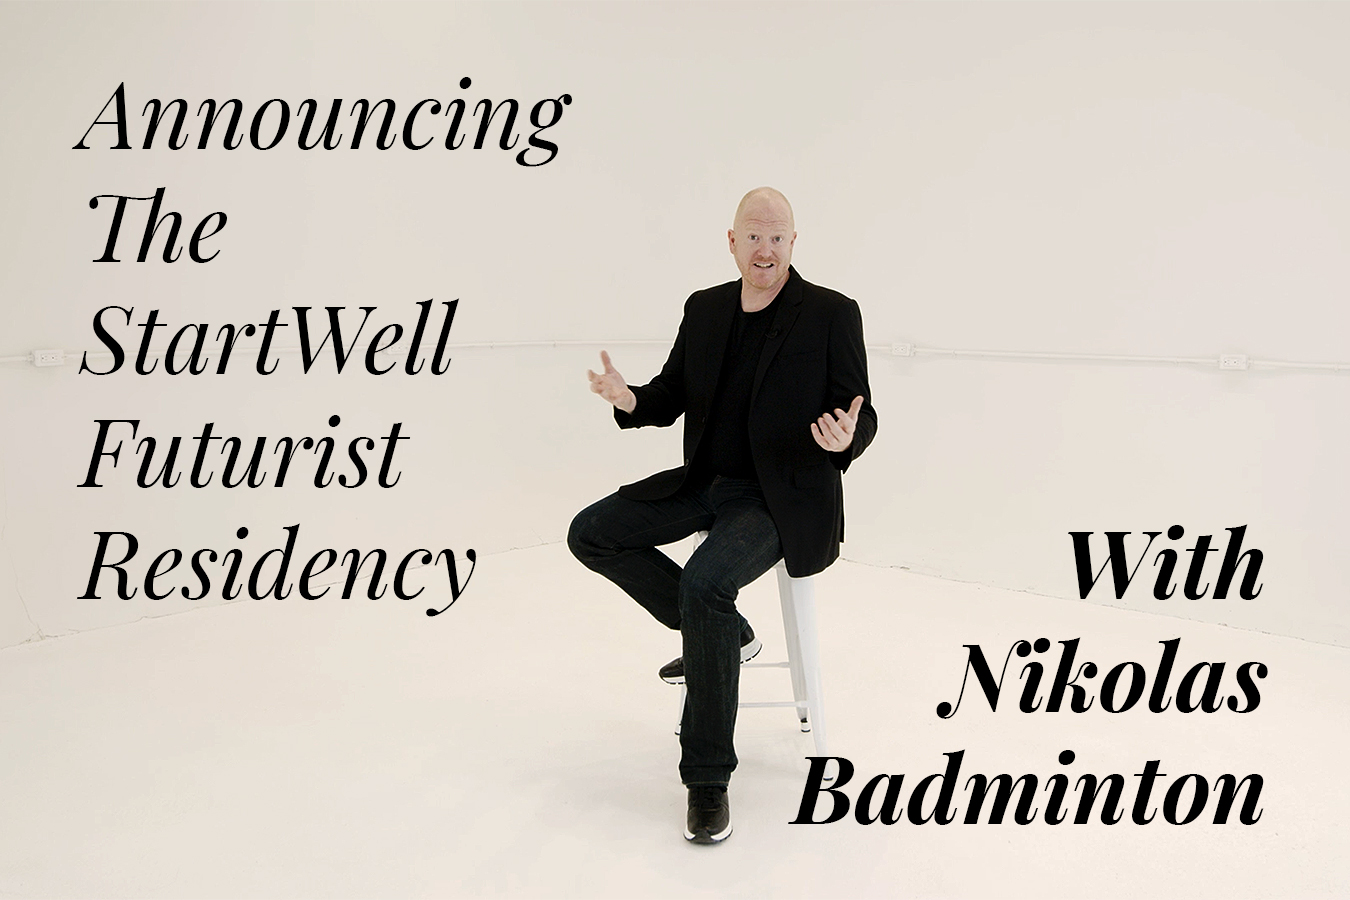 Announcing the StartWell Futurist Residency Program